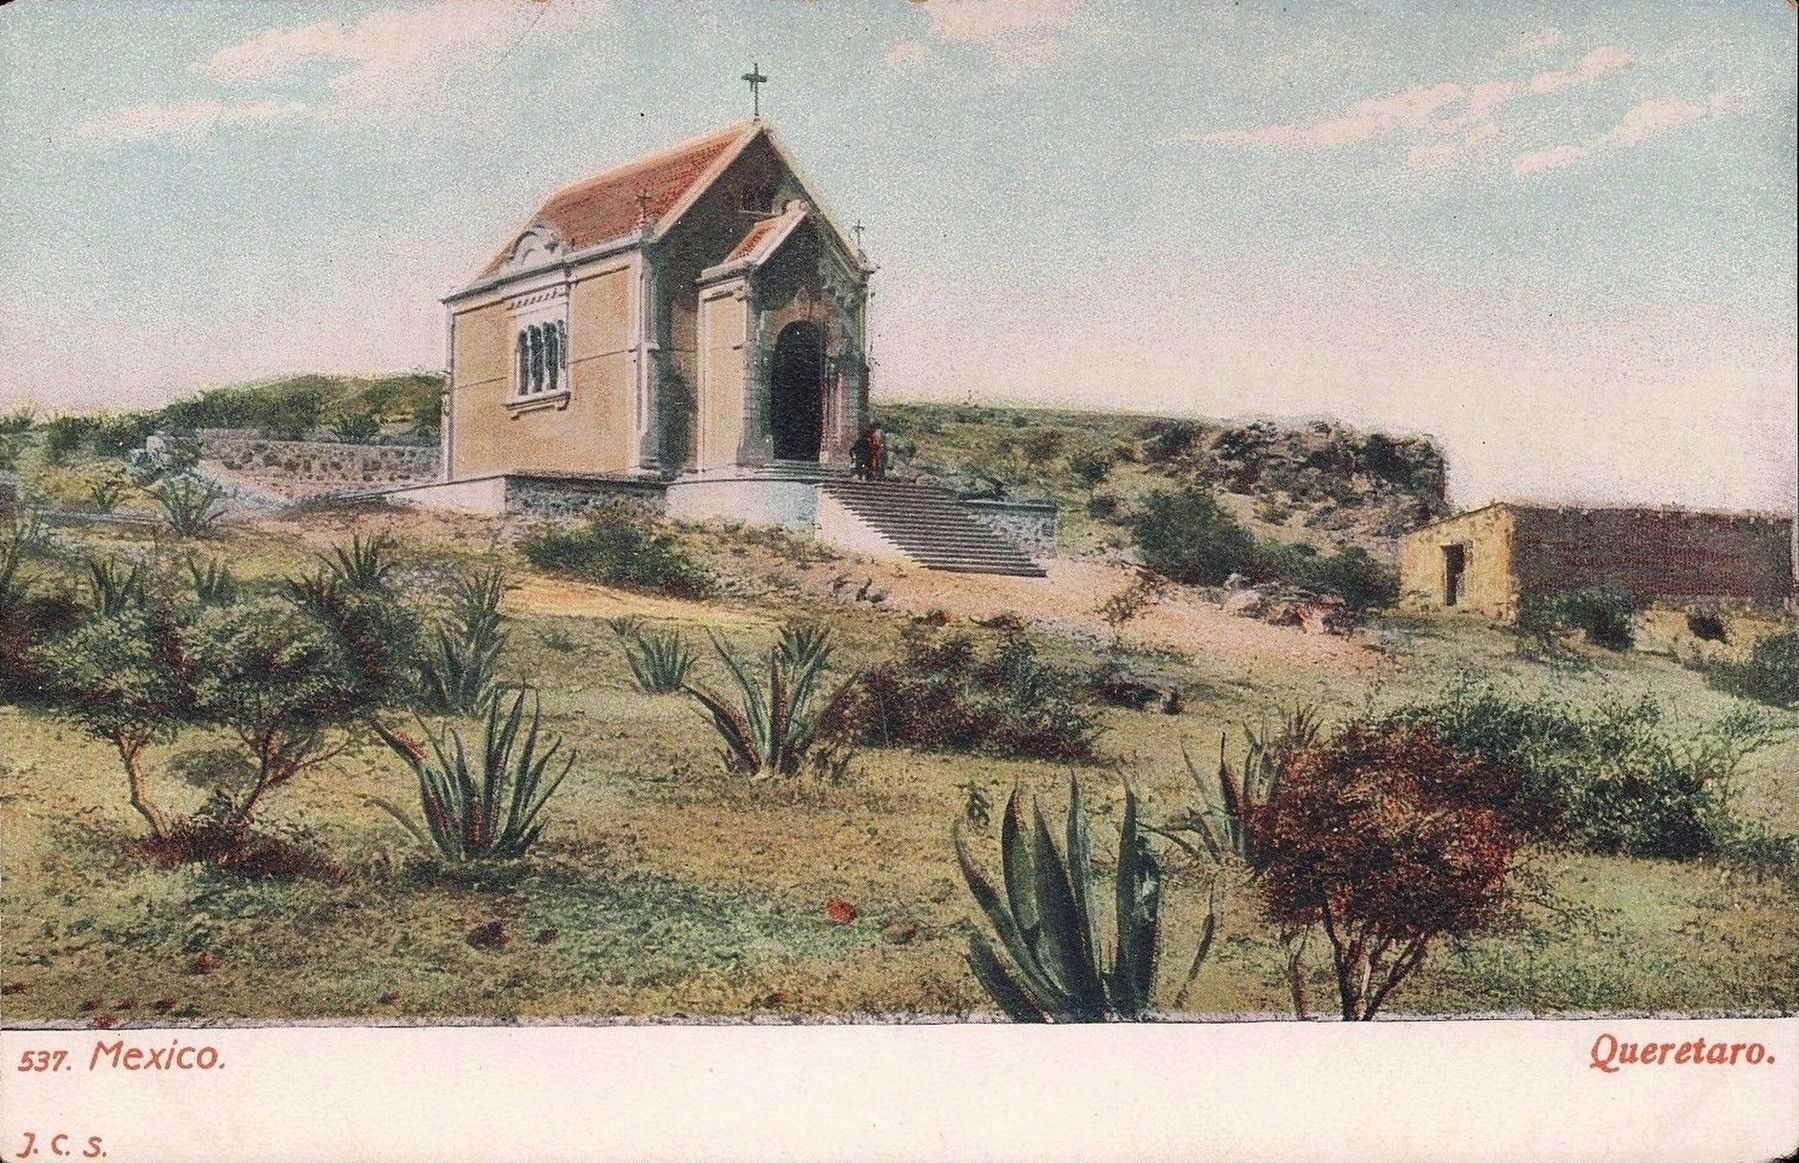 The Maximilian Chapel built in 1900, mentioned in the marker text - Postcard View image. Click for full size.